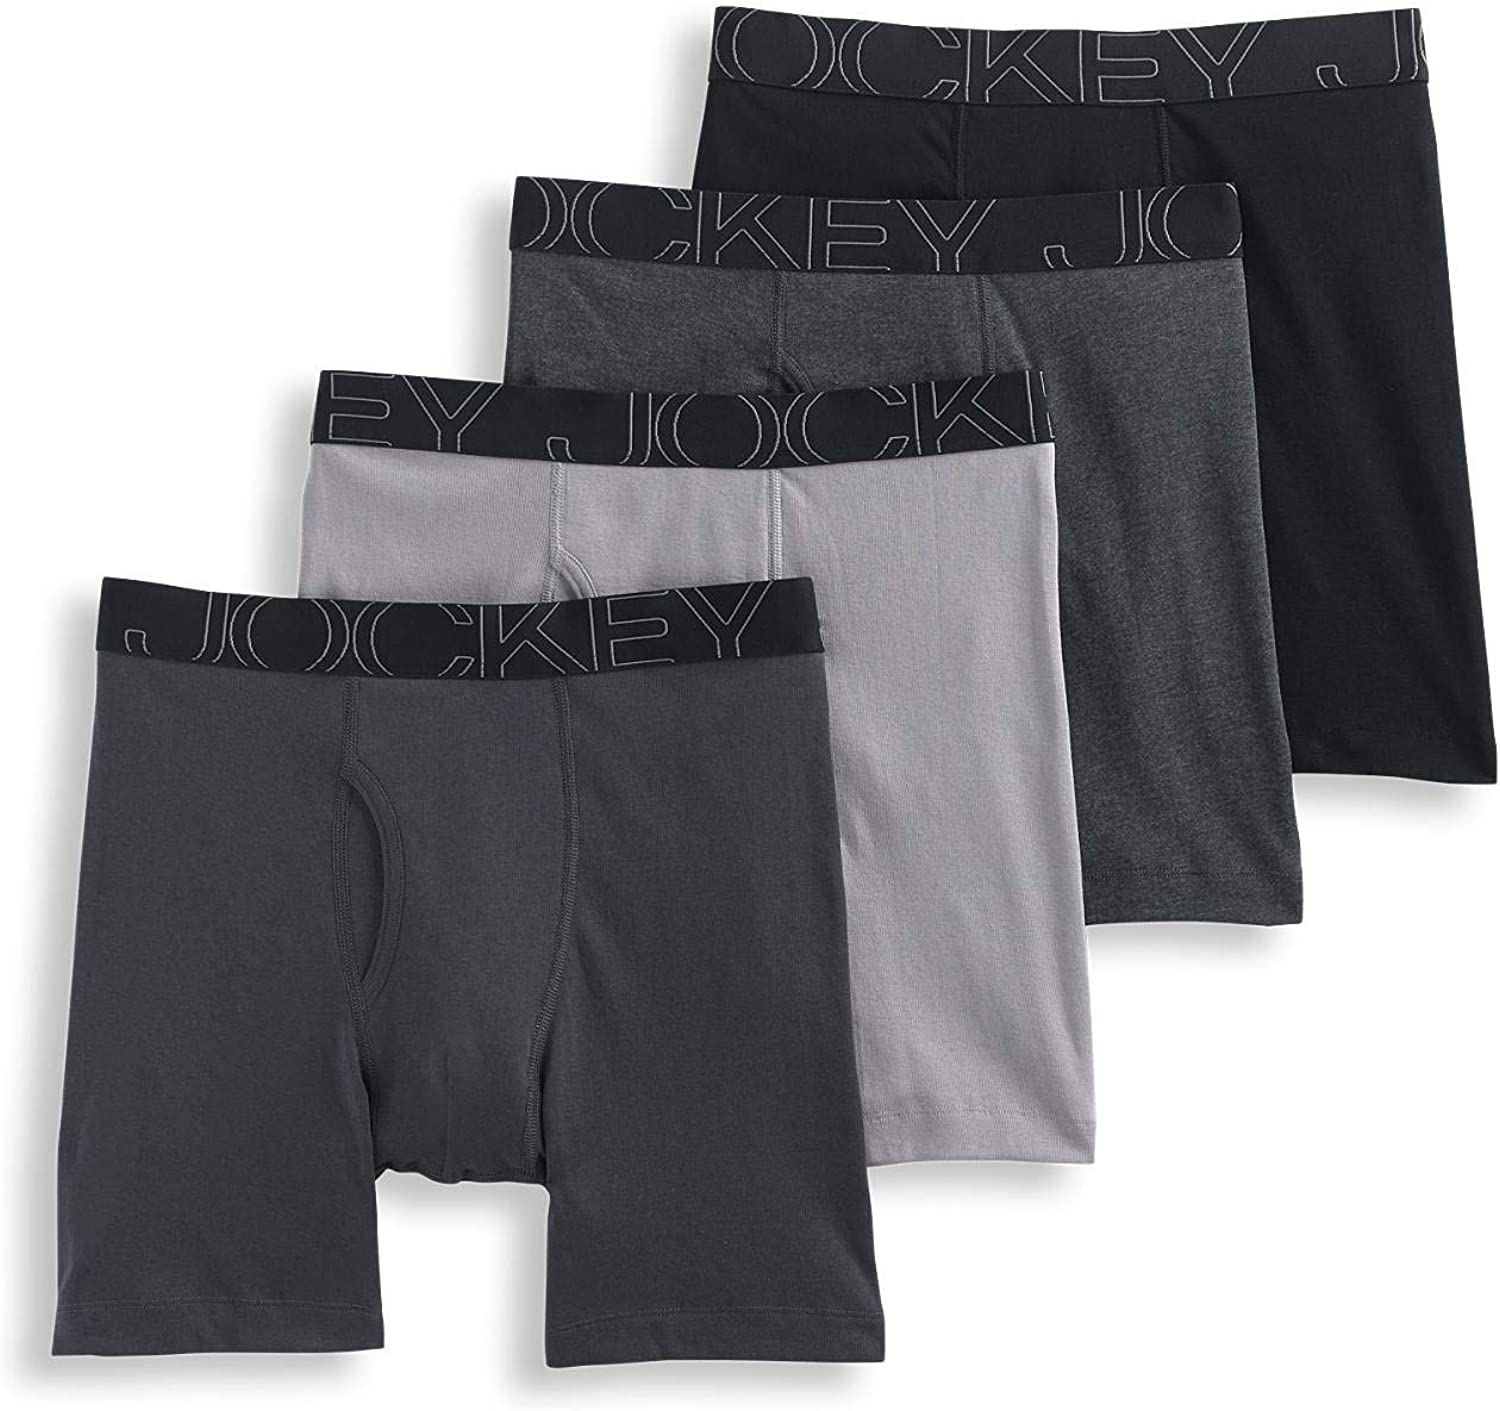 Jockey Men's Underwear ActiveBlend Midway - 4 Pack